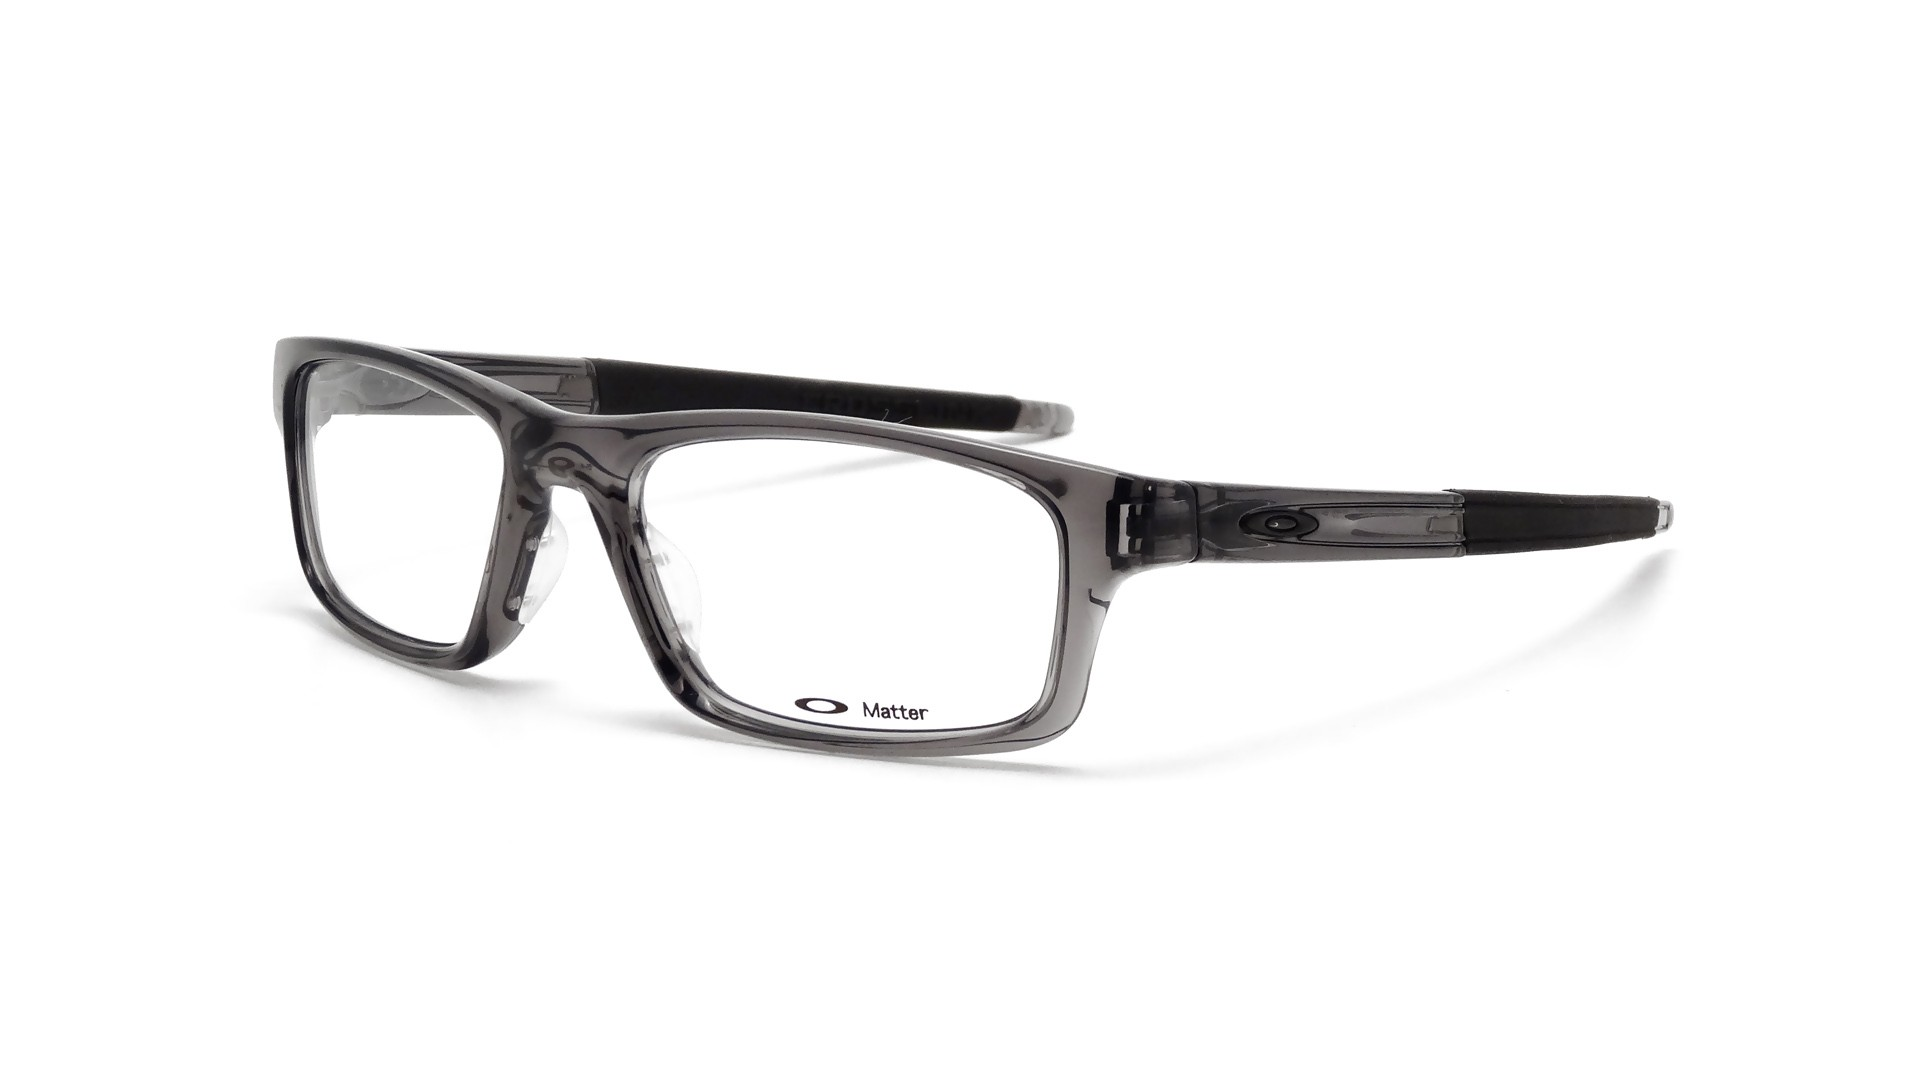 Glasses Frames Recto Or Quiapo : Eye glasses Oakley Crosslink OX 8037 02 Black Large